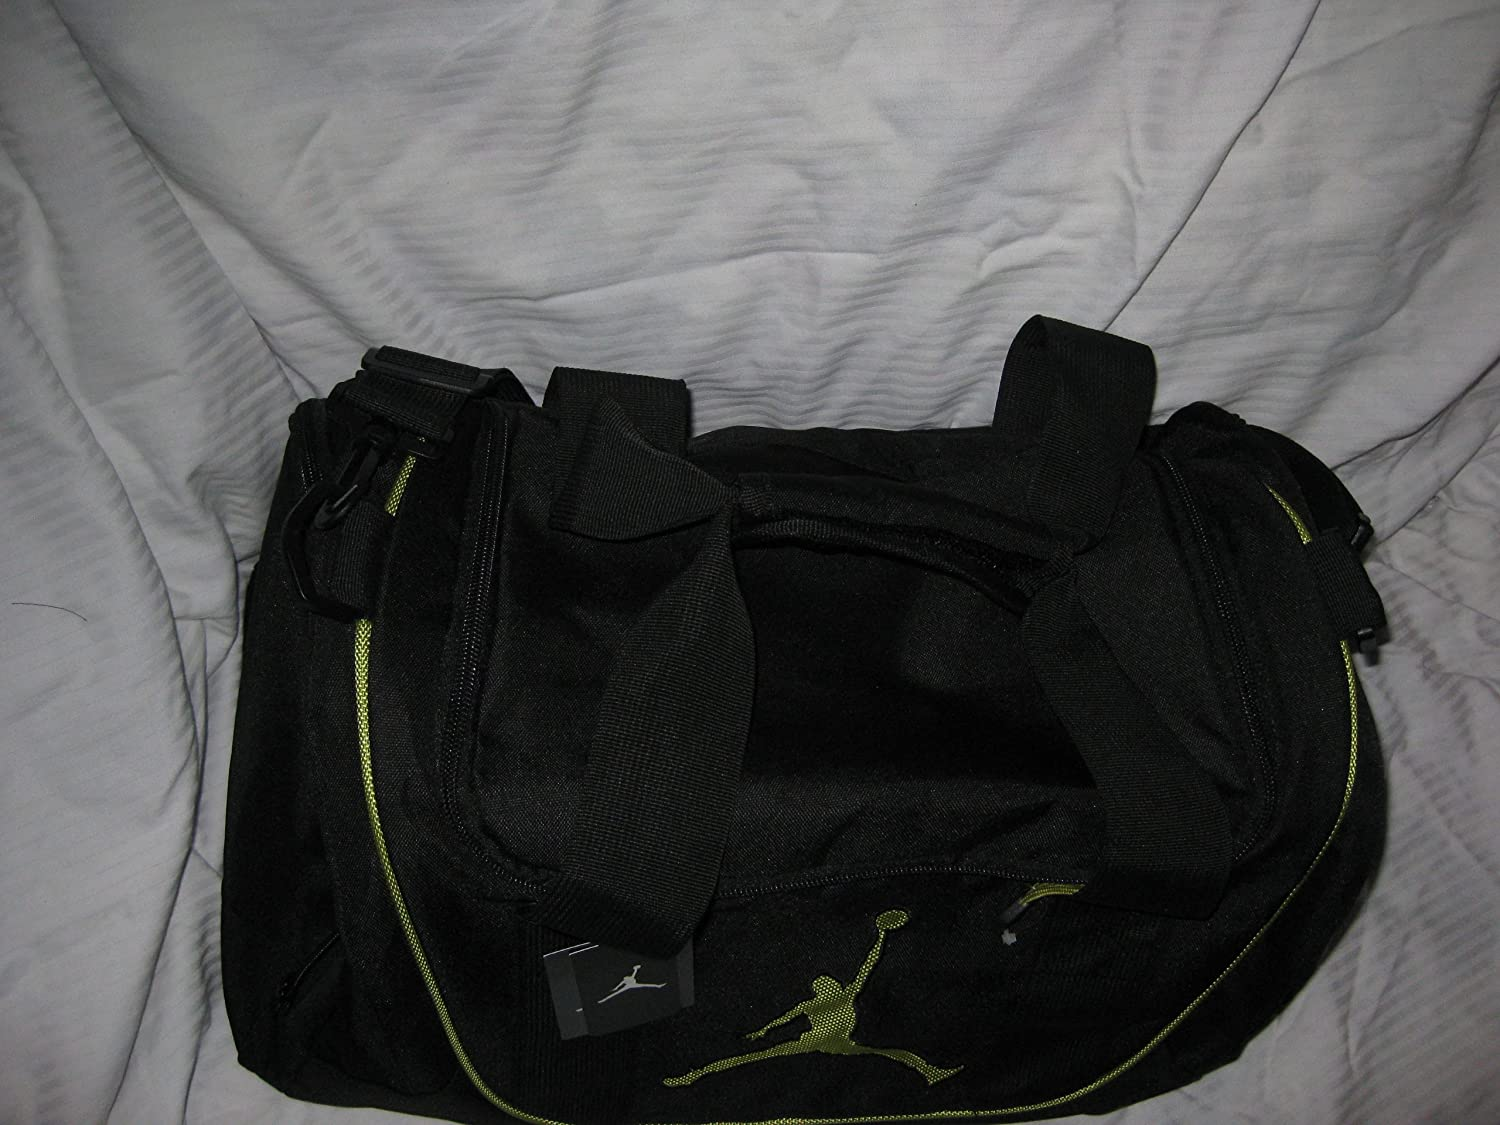 bd3f7ae429 Amazon.com   Nike Air Jordan Duffel Gym Bag Basketball Tote Black Lime  Green Tote Travel Duffle Bag   Outdoor Backpack Reservoirs   Sports    Outdoors